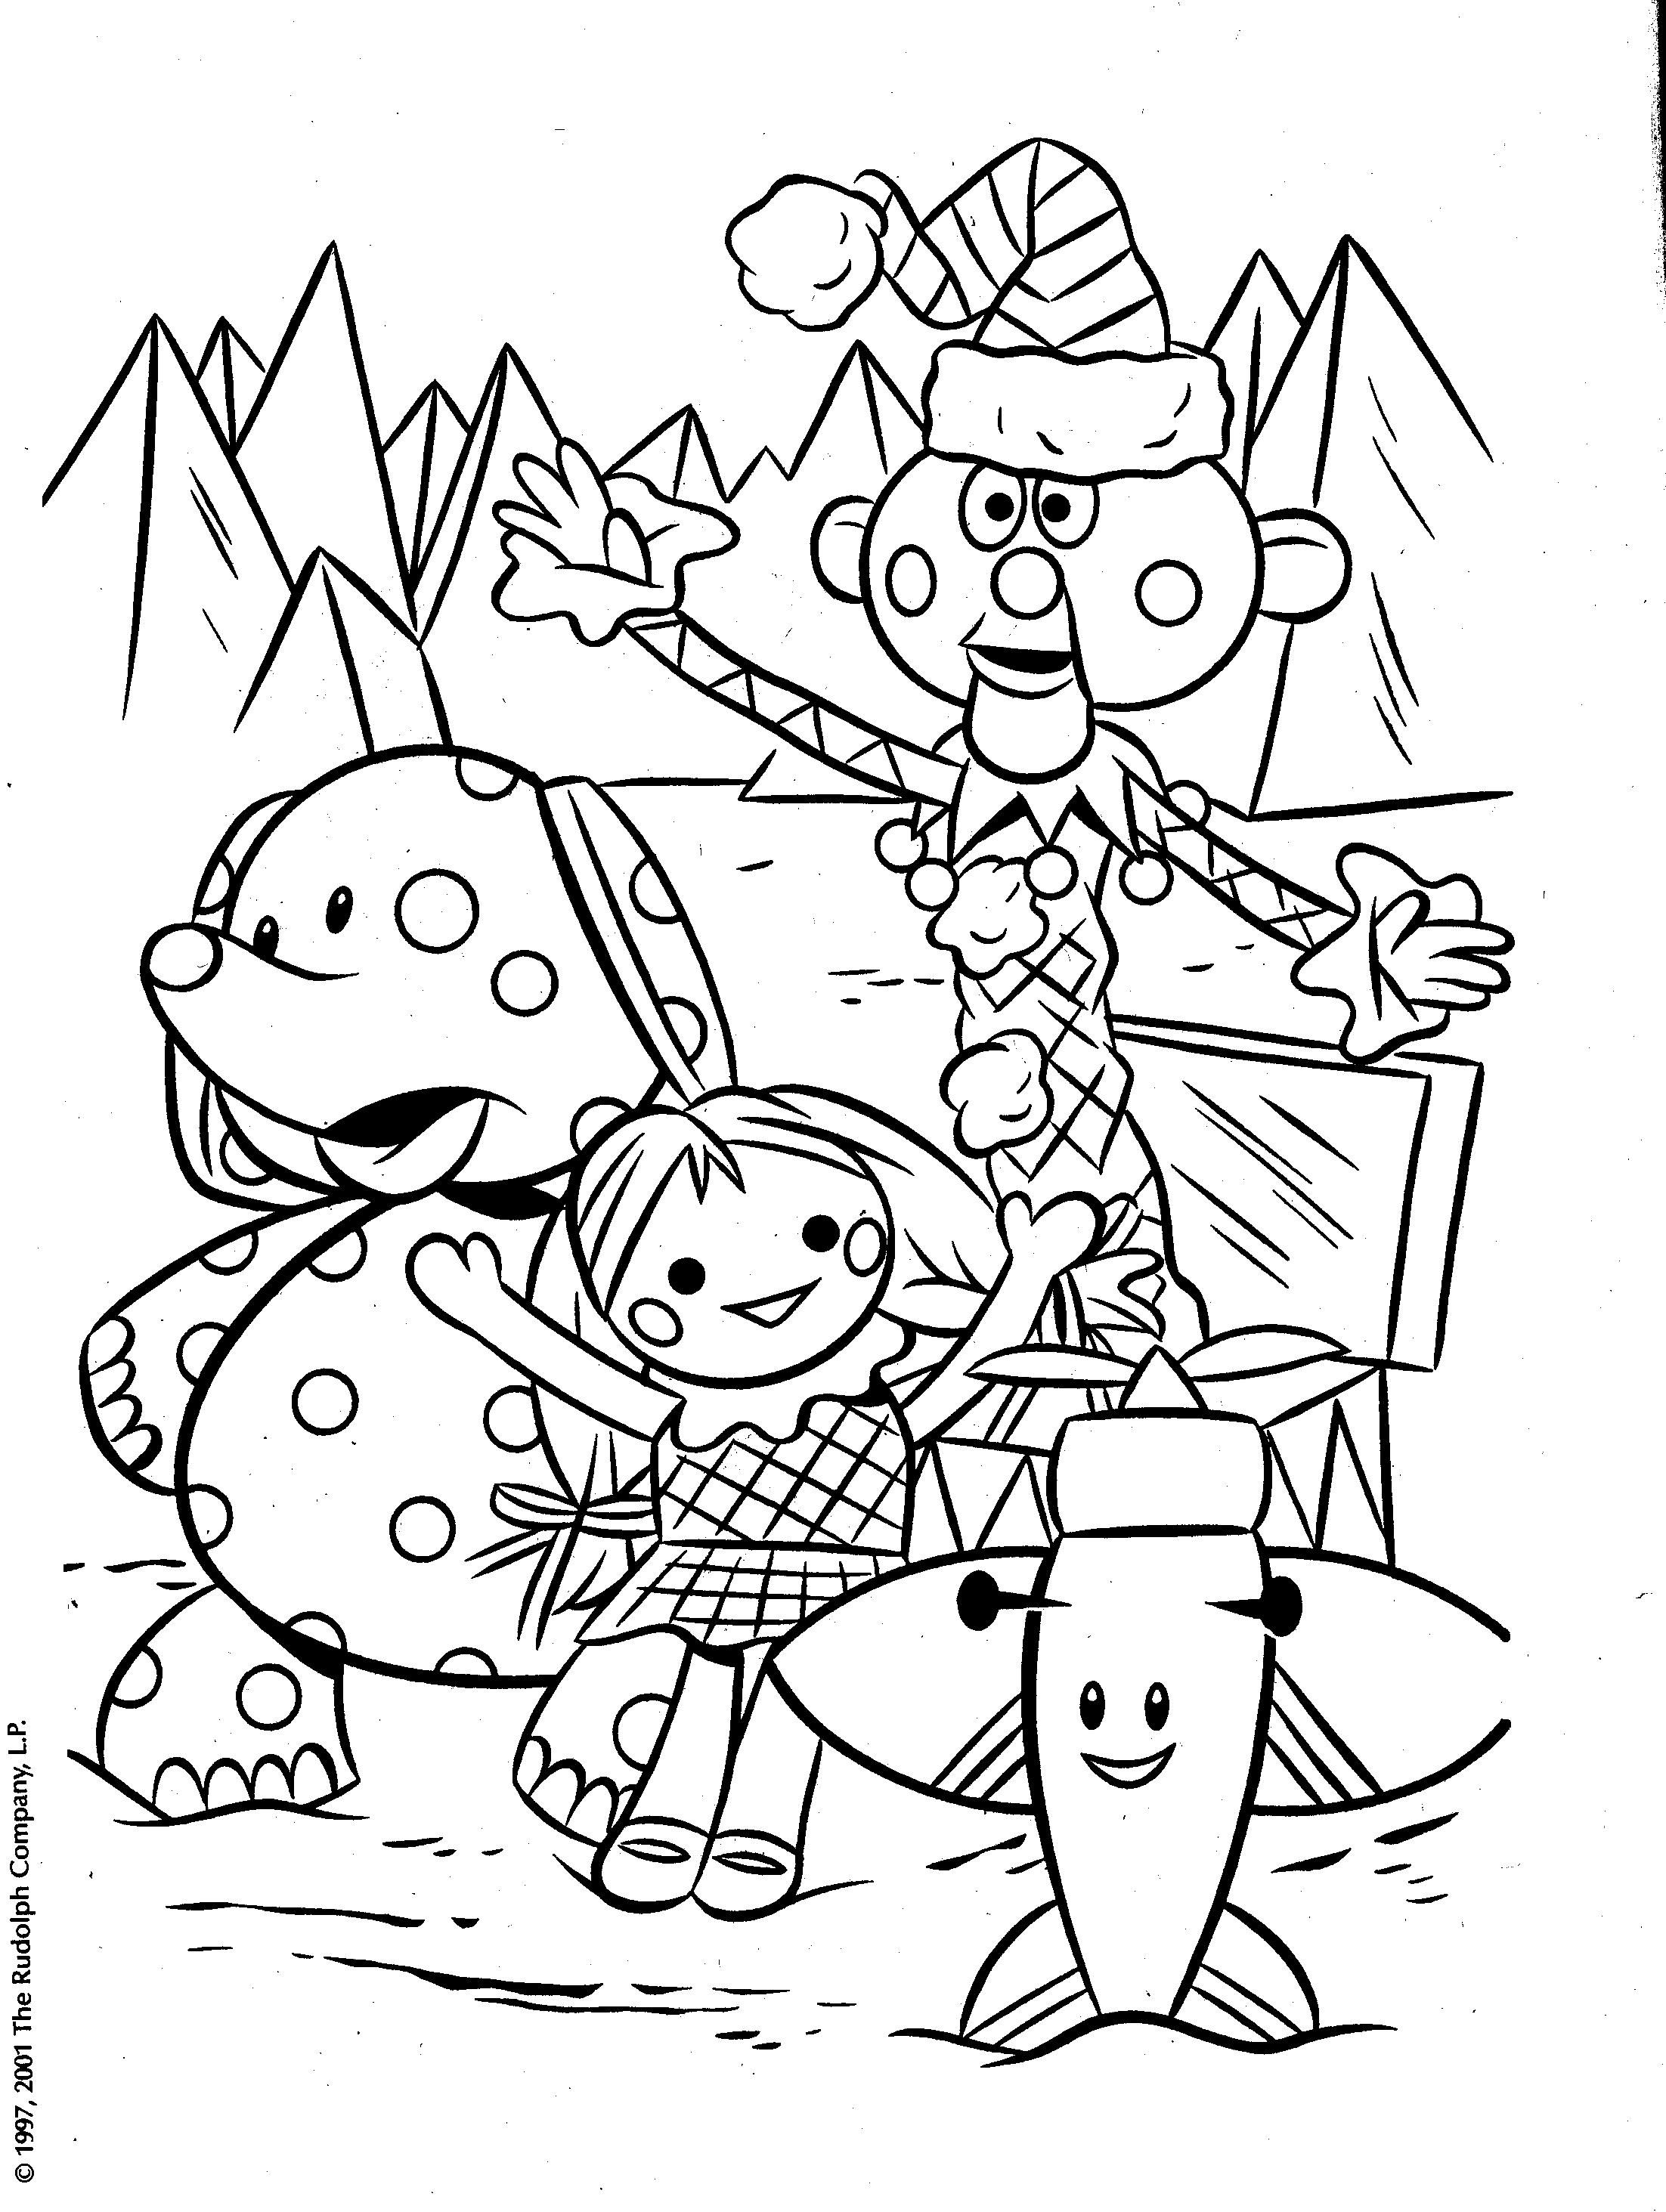 rudolph misfit toys coloring pages